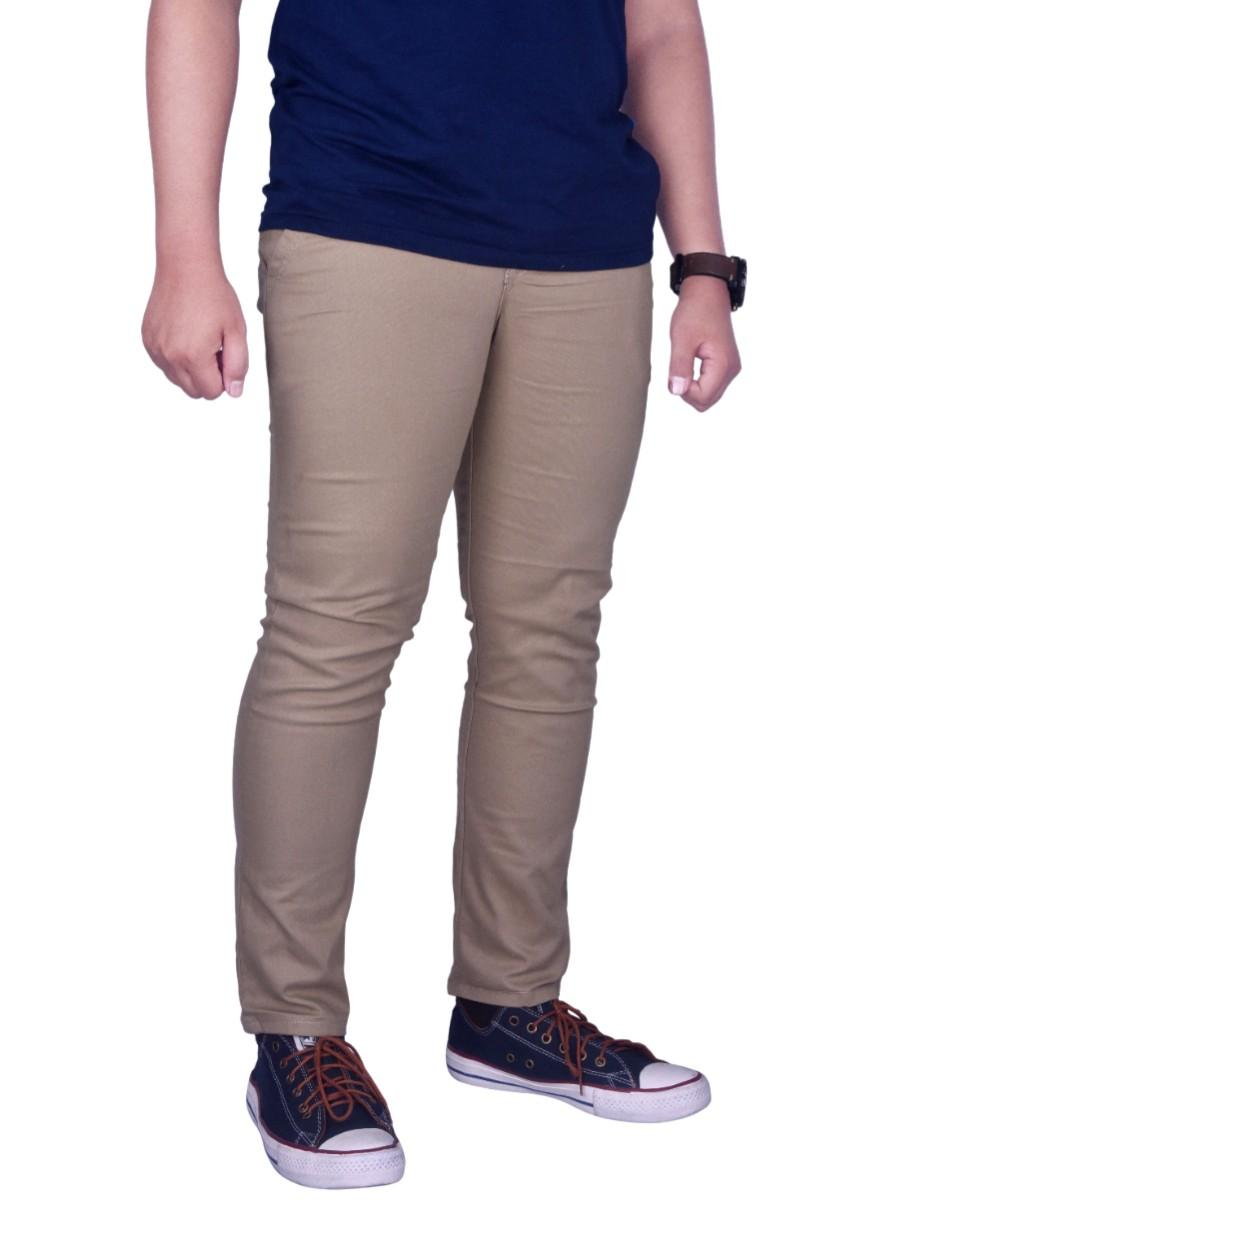 Dgm_Fashion1 Celana Chino Best Seller Polos Cream Panjang/Celana Panjang Chinos/Celana Chino Import